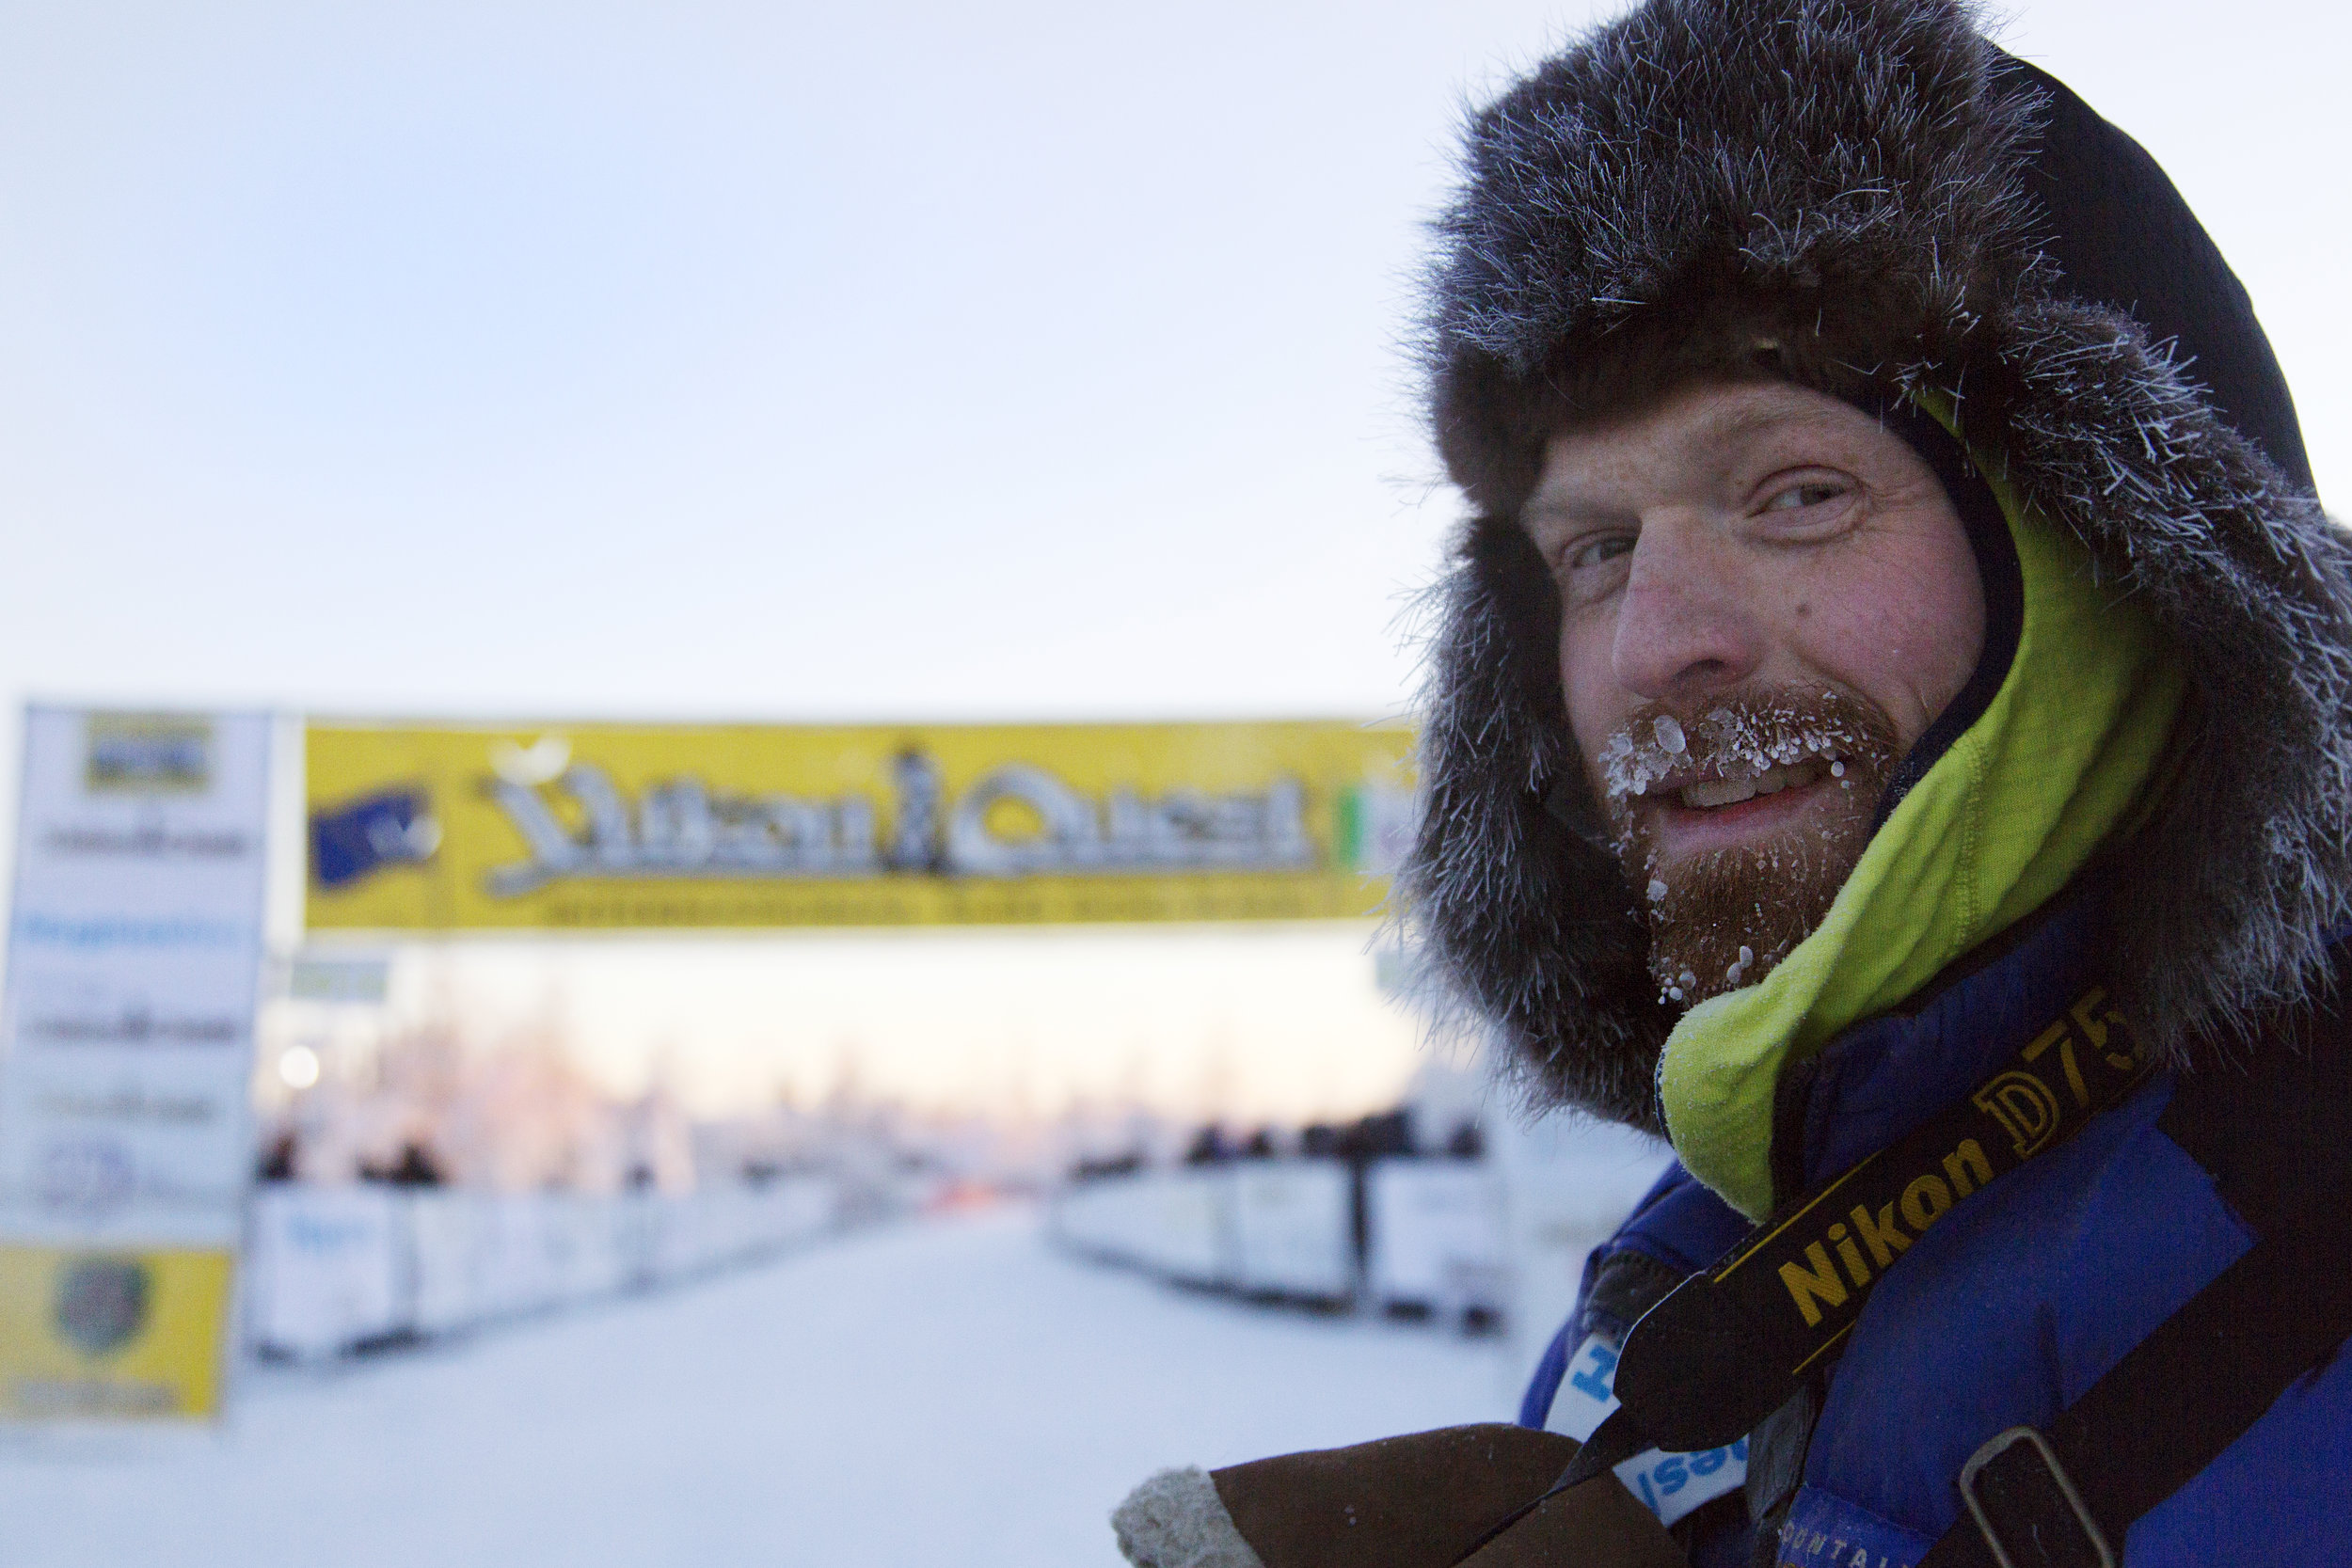 Official Yukon Quest photographer, Seth Adams, stands at the start line on day one of the race outside of the Morris Thompson Visitor Center in downtown, Fairbanks, AK. When Adams isn't photographing the quest, he works a freelance adventure writer and photographer in Fairbanks, Alaska. He specializes in outdoor adventure journalism and first-person trip reports. (c) Sarah Manriquez 2018